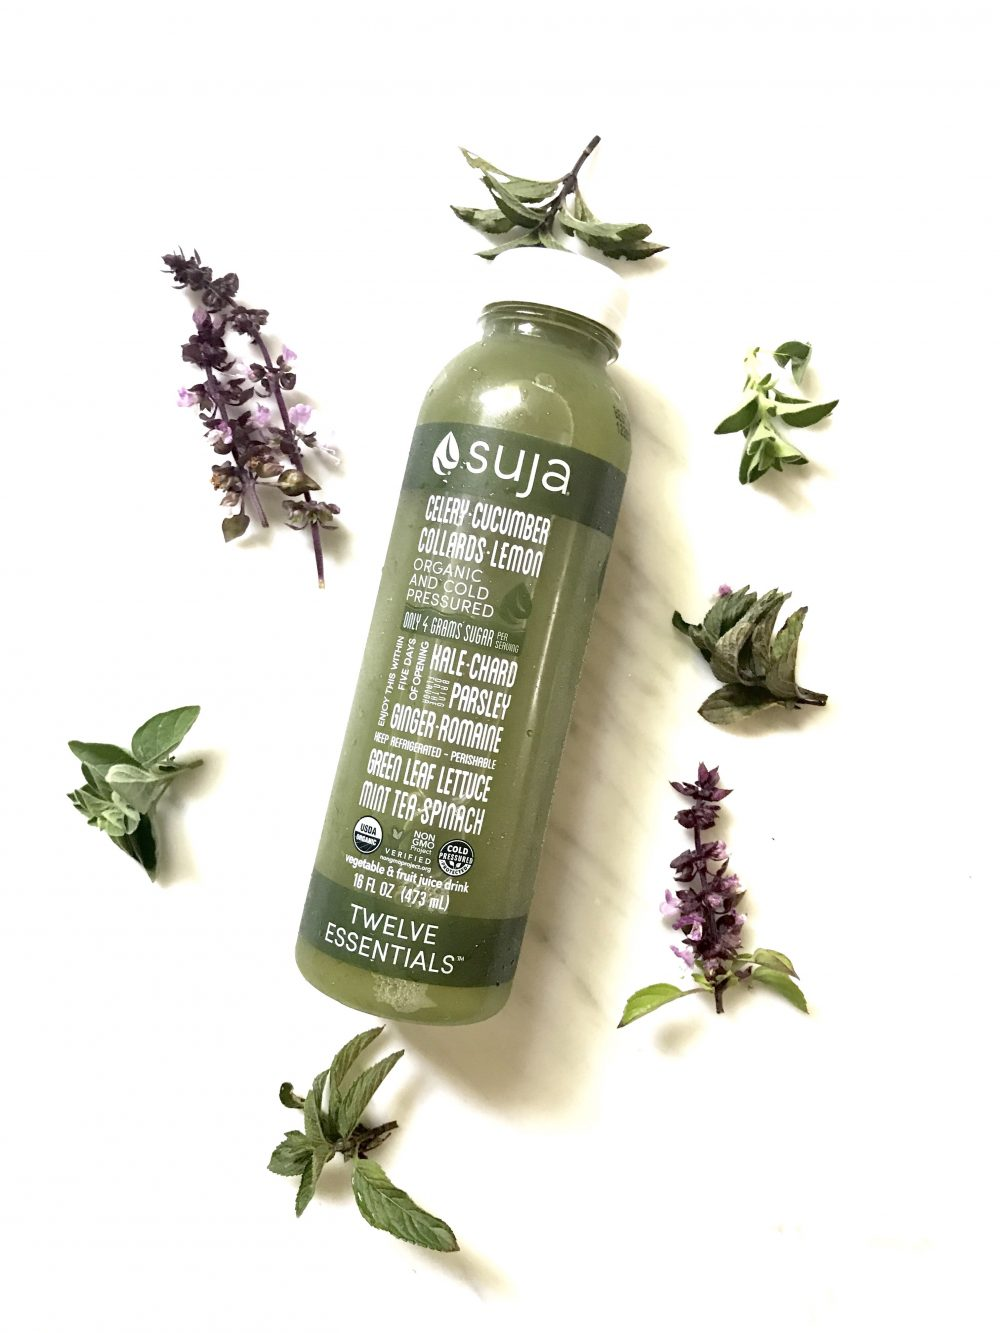 The Best Juice Cleanse from Cali by Liz in Los Angeles, Lifestyle Blogger